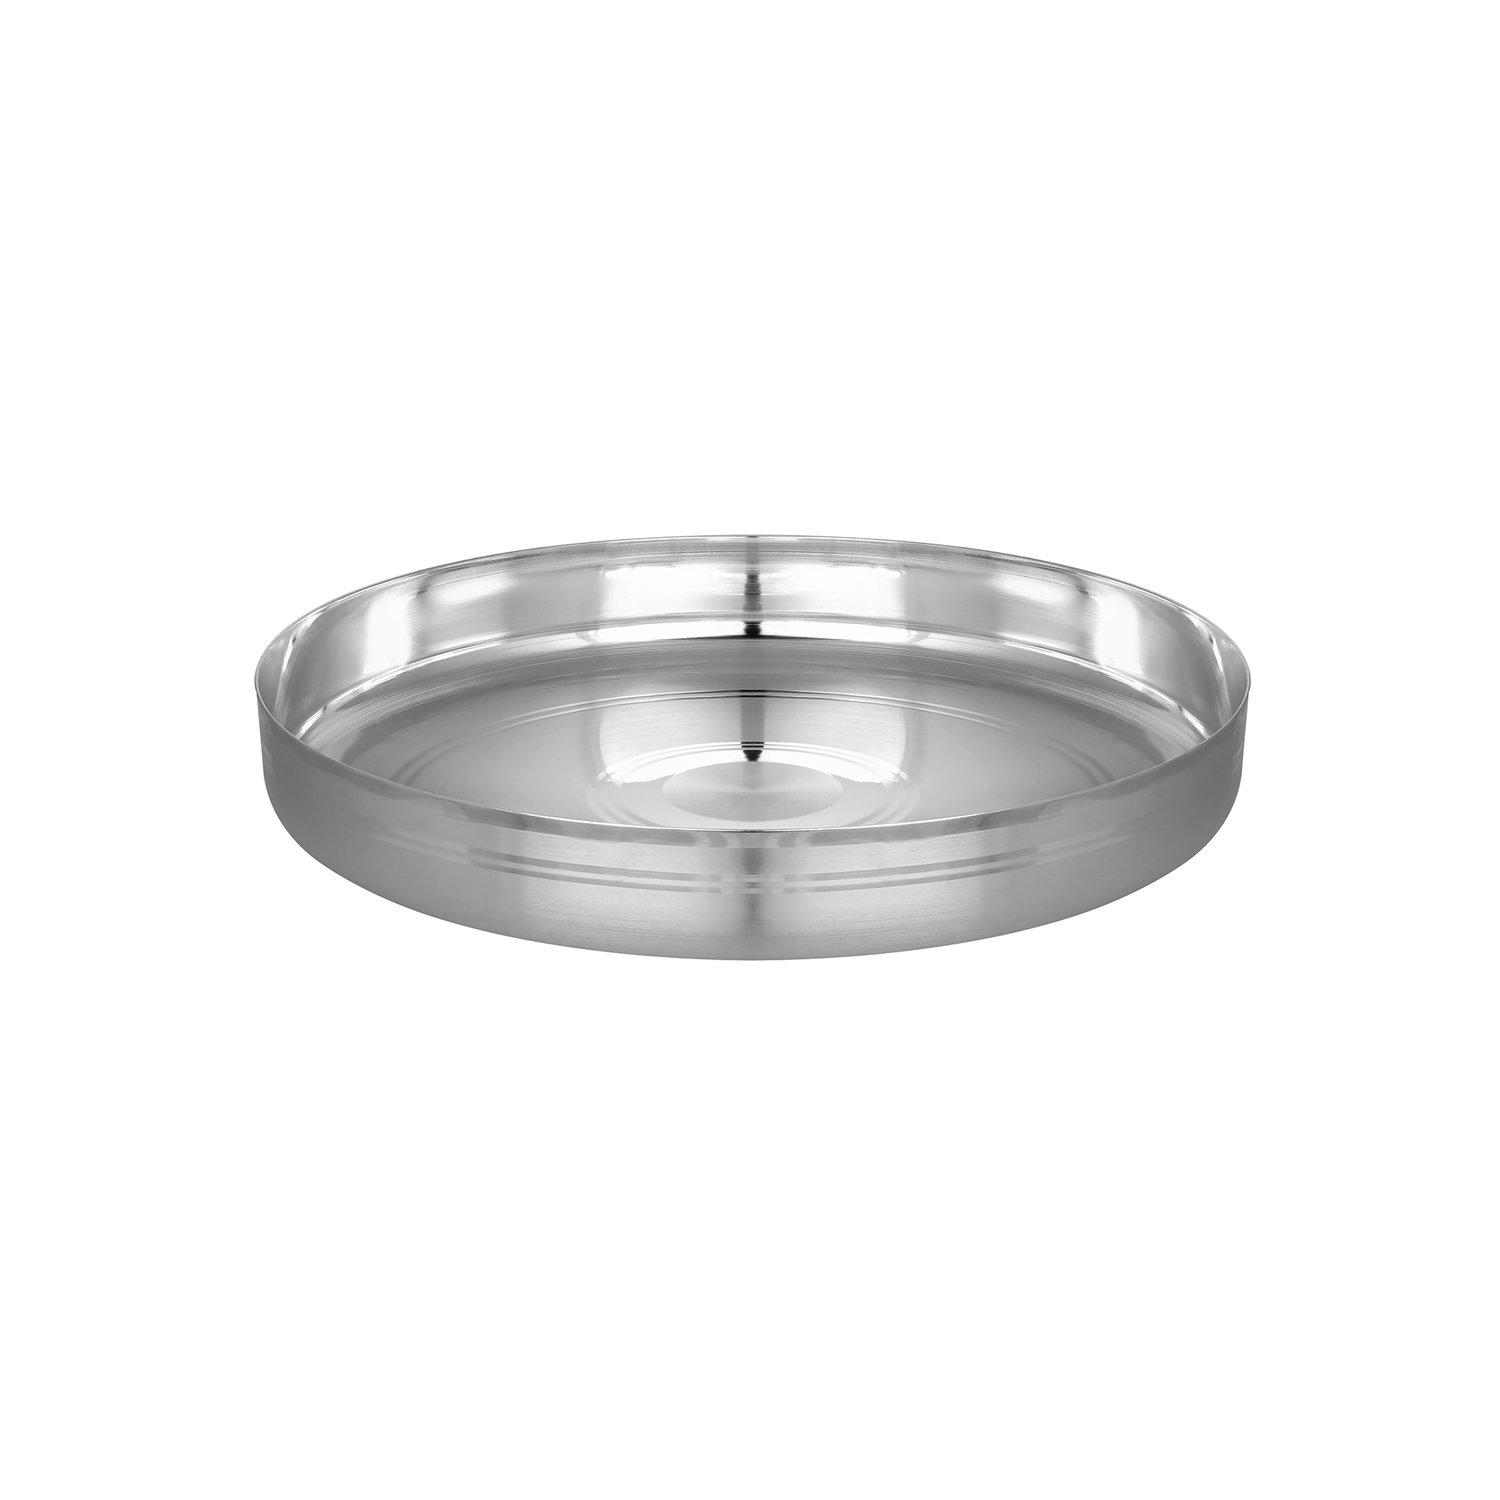 Silver Plate 92 5 Purity